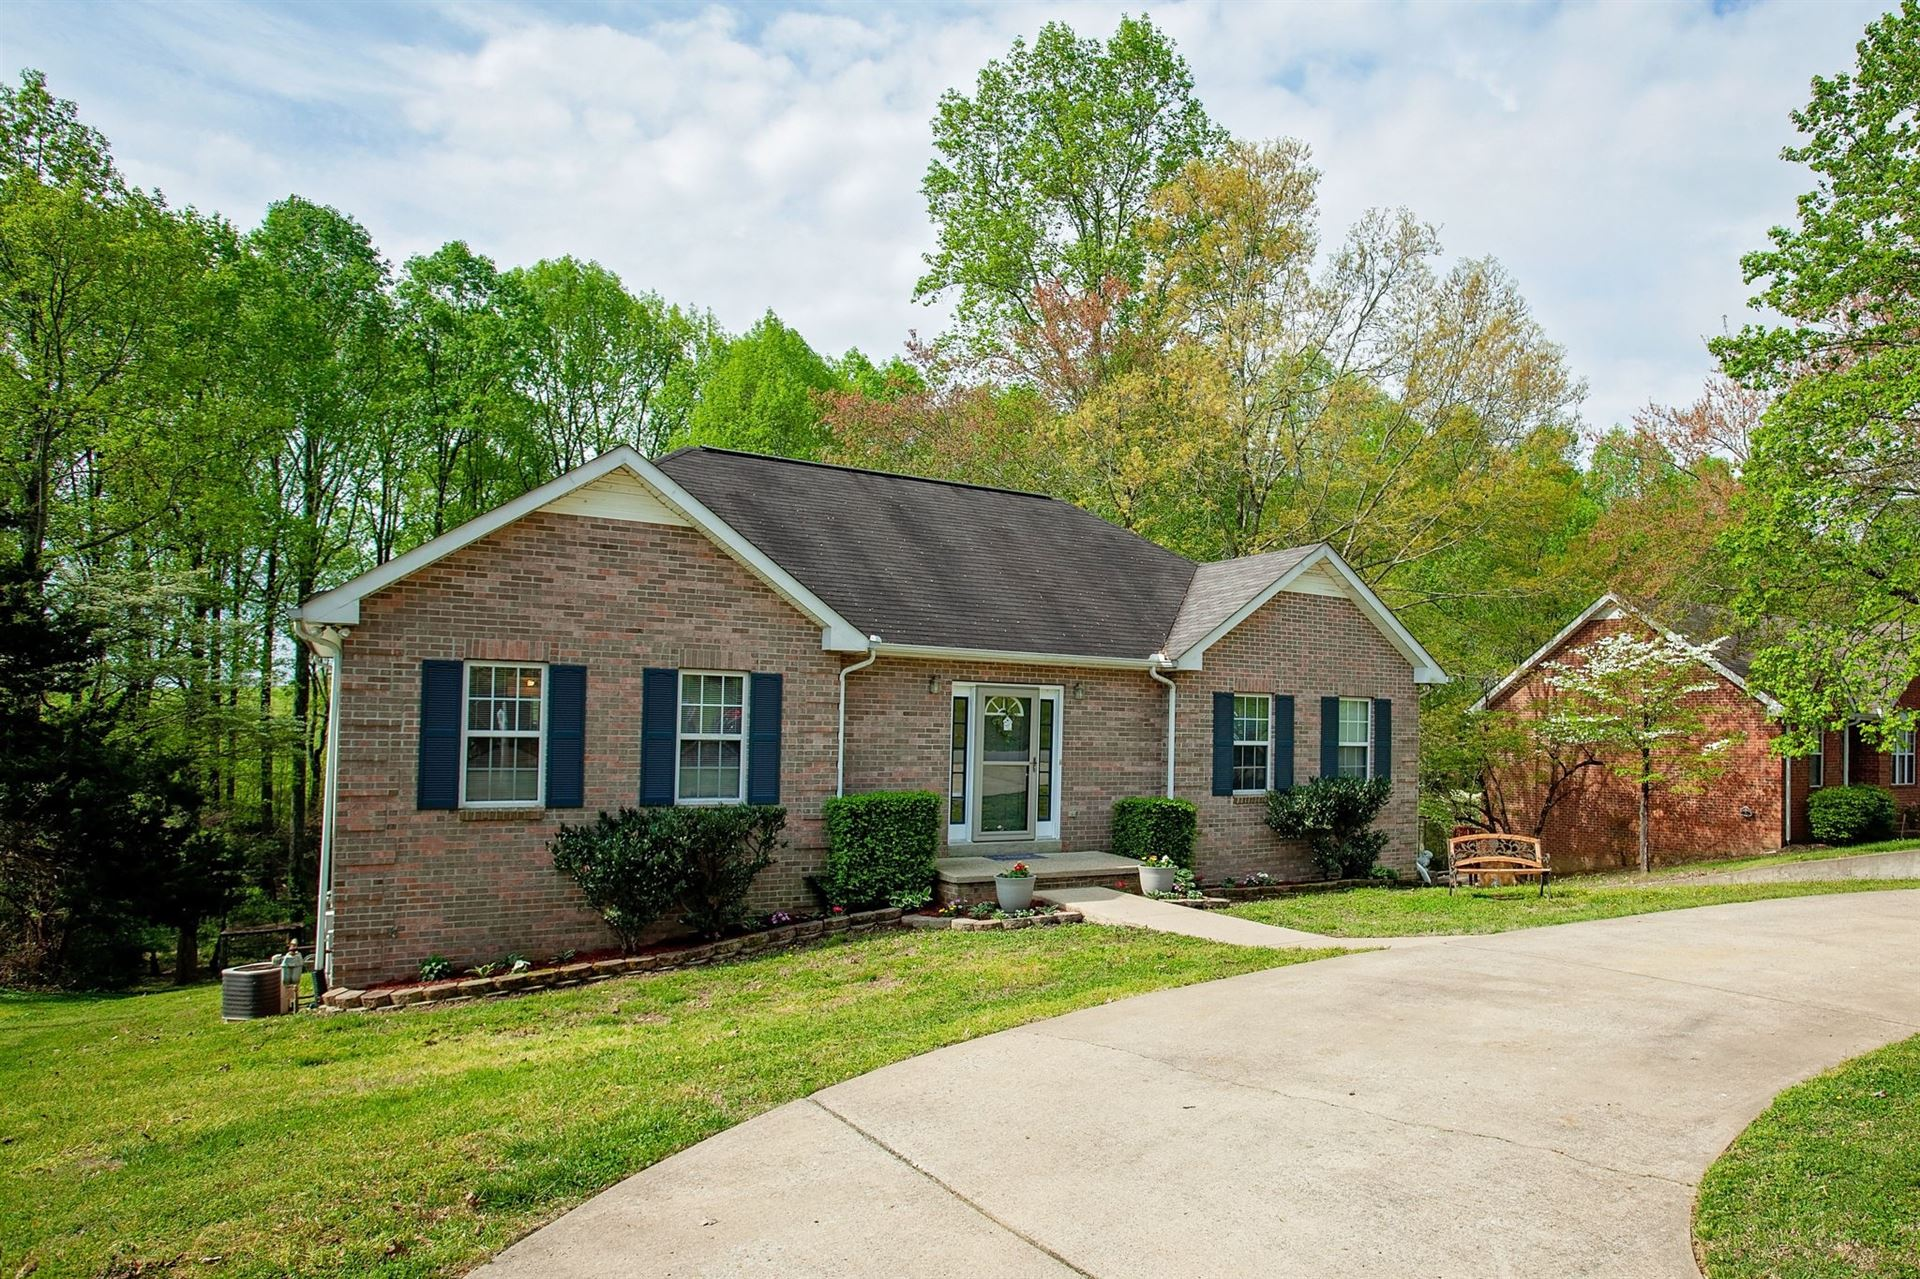 Photo of 167 Hickory Hollow Dr, Dickson, TN 37055 (MLS # 2139219)